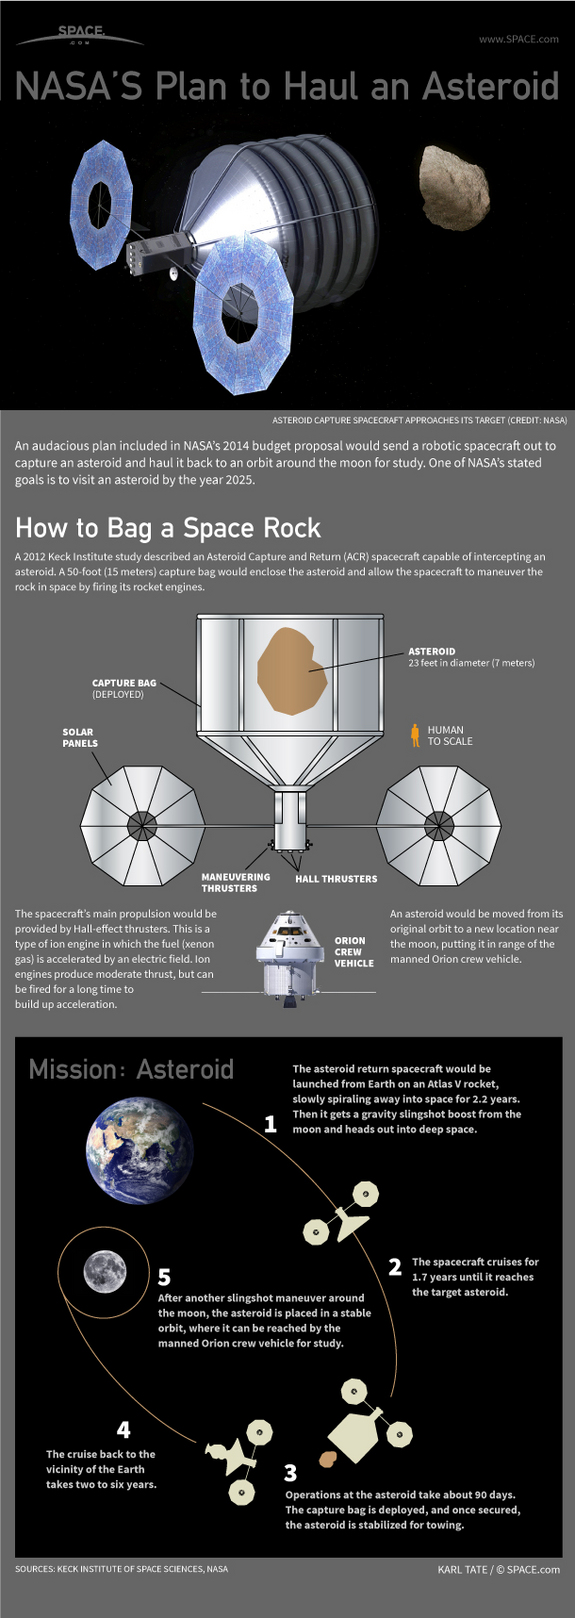 Find out how NASA's plan to move an asteroid works in this SPACE.com infographic.